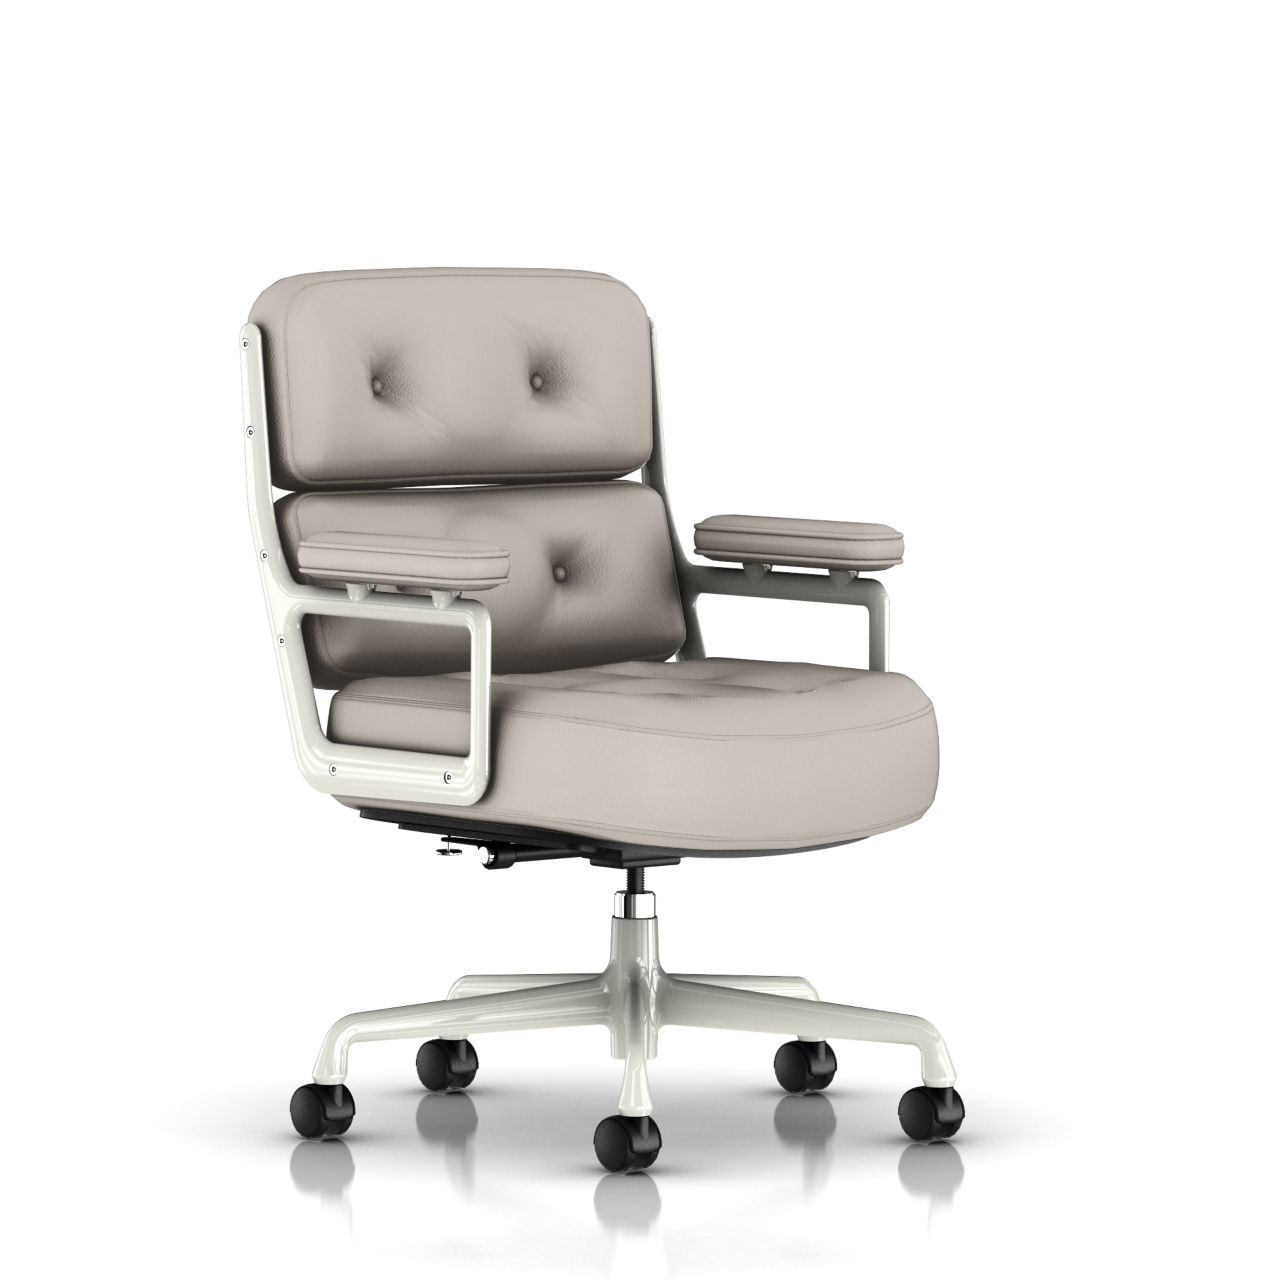 Eames Executive Work Chair in Sable Grey Leather by Herman Miller